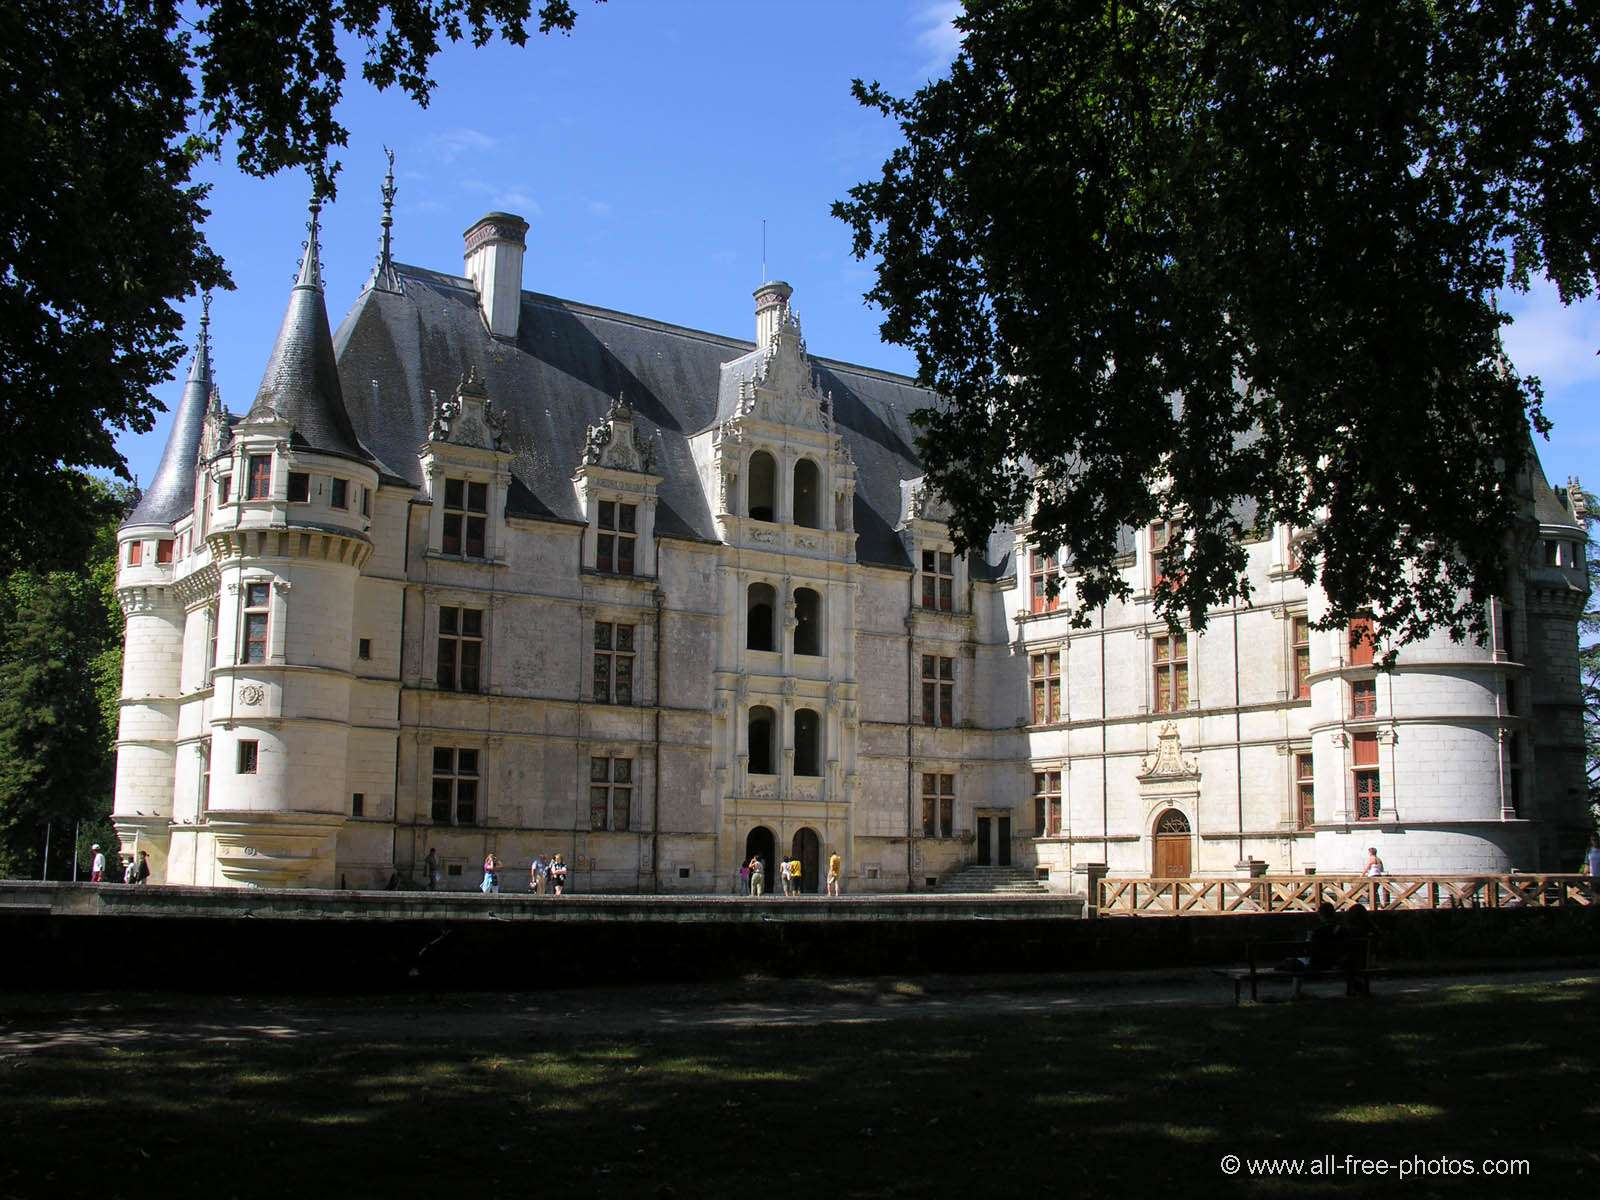 Castle of Azay le Rideau - France